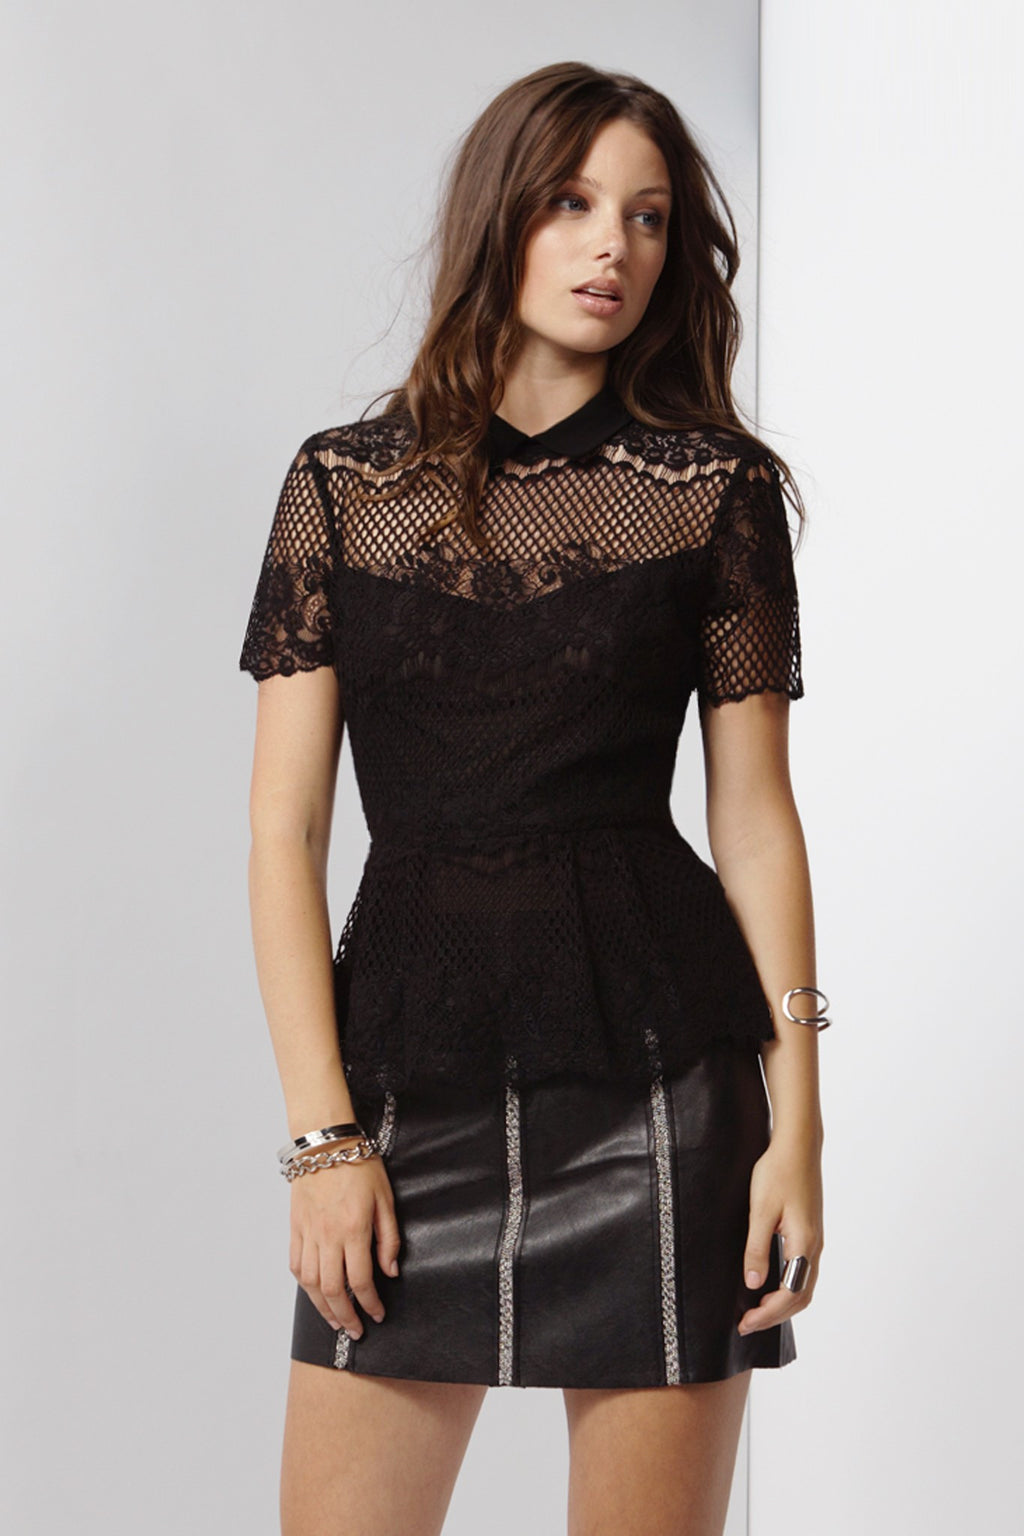 Black Lace Peplum Texted Top